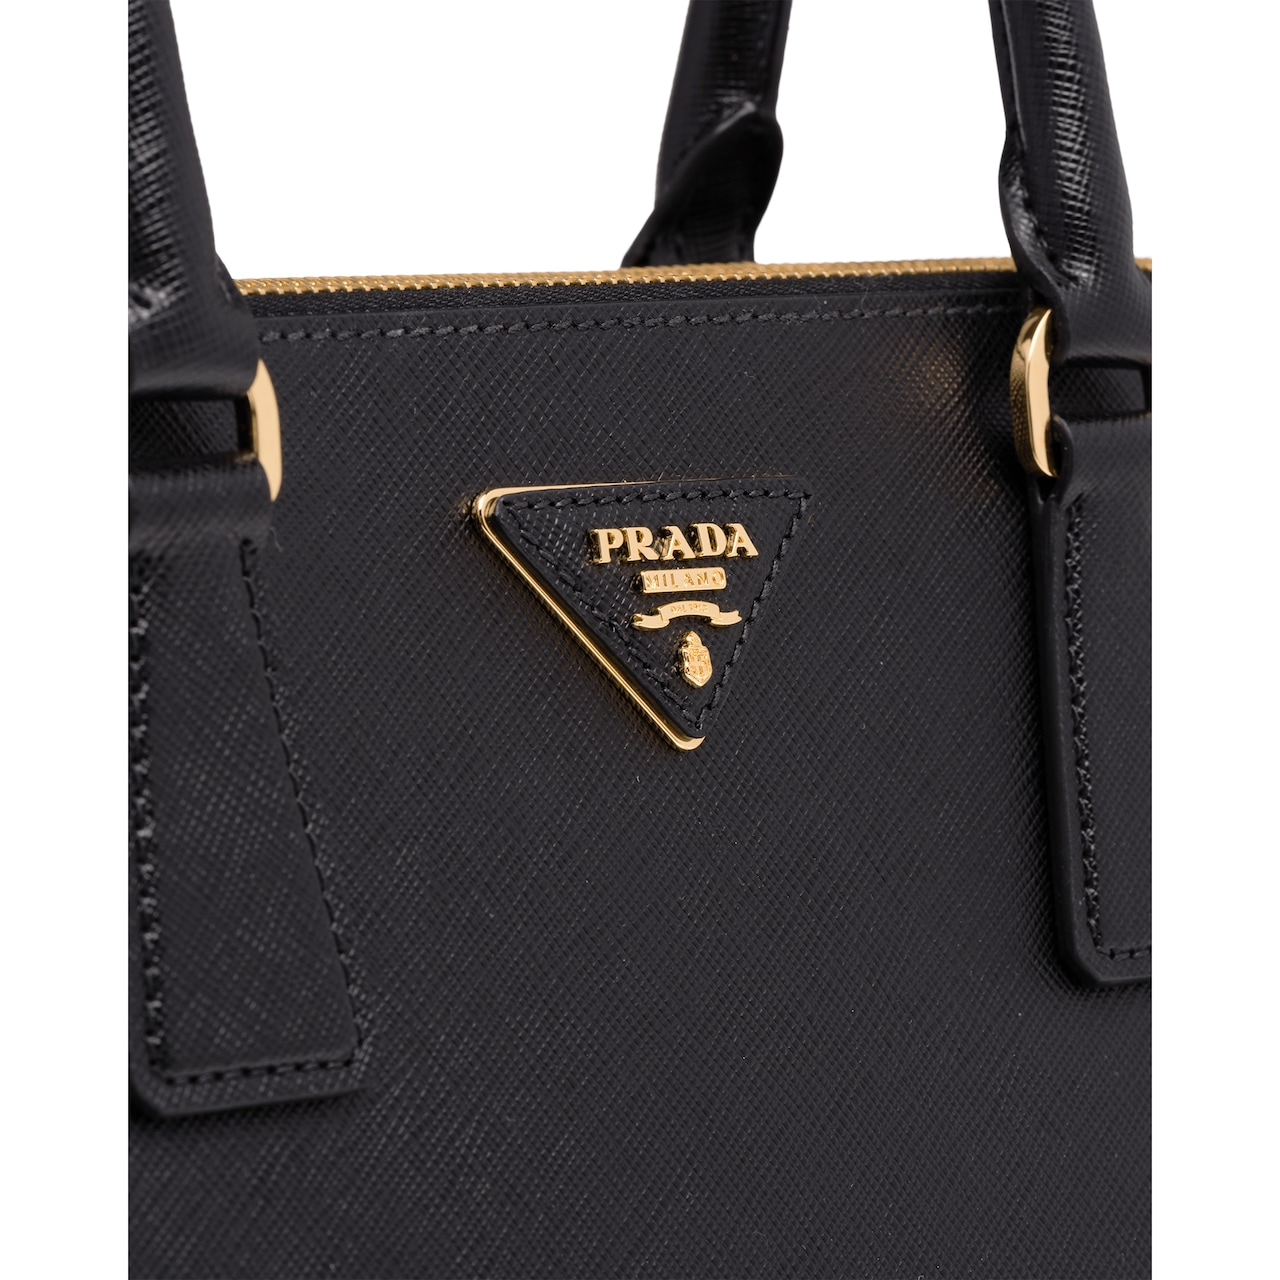 Prada Prada Galleria Medium Saffiano Leather Bag 5